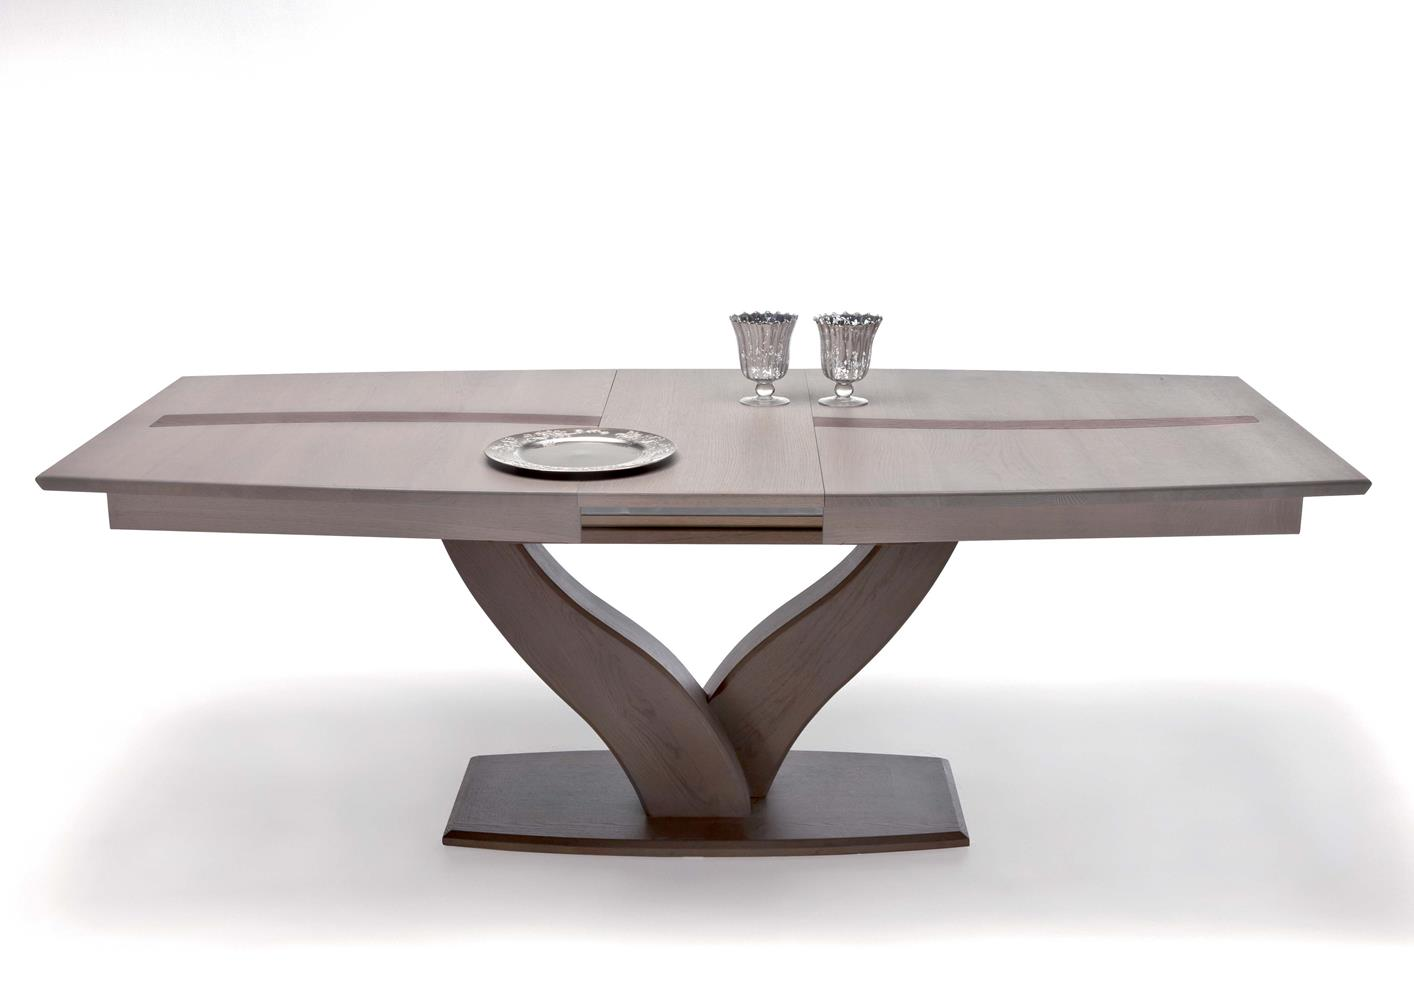 Acheter votre table moderne pied central y en ch ne massif for Table pied central